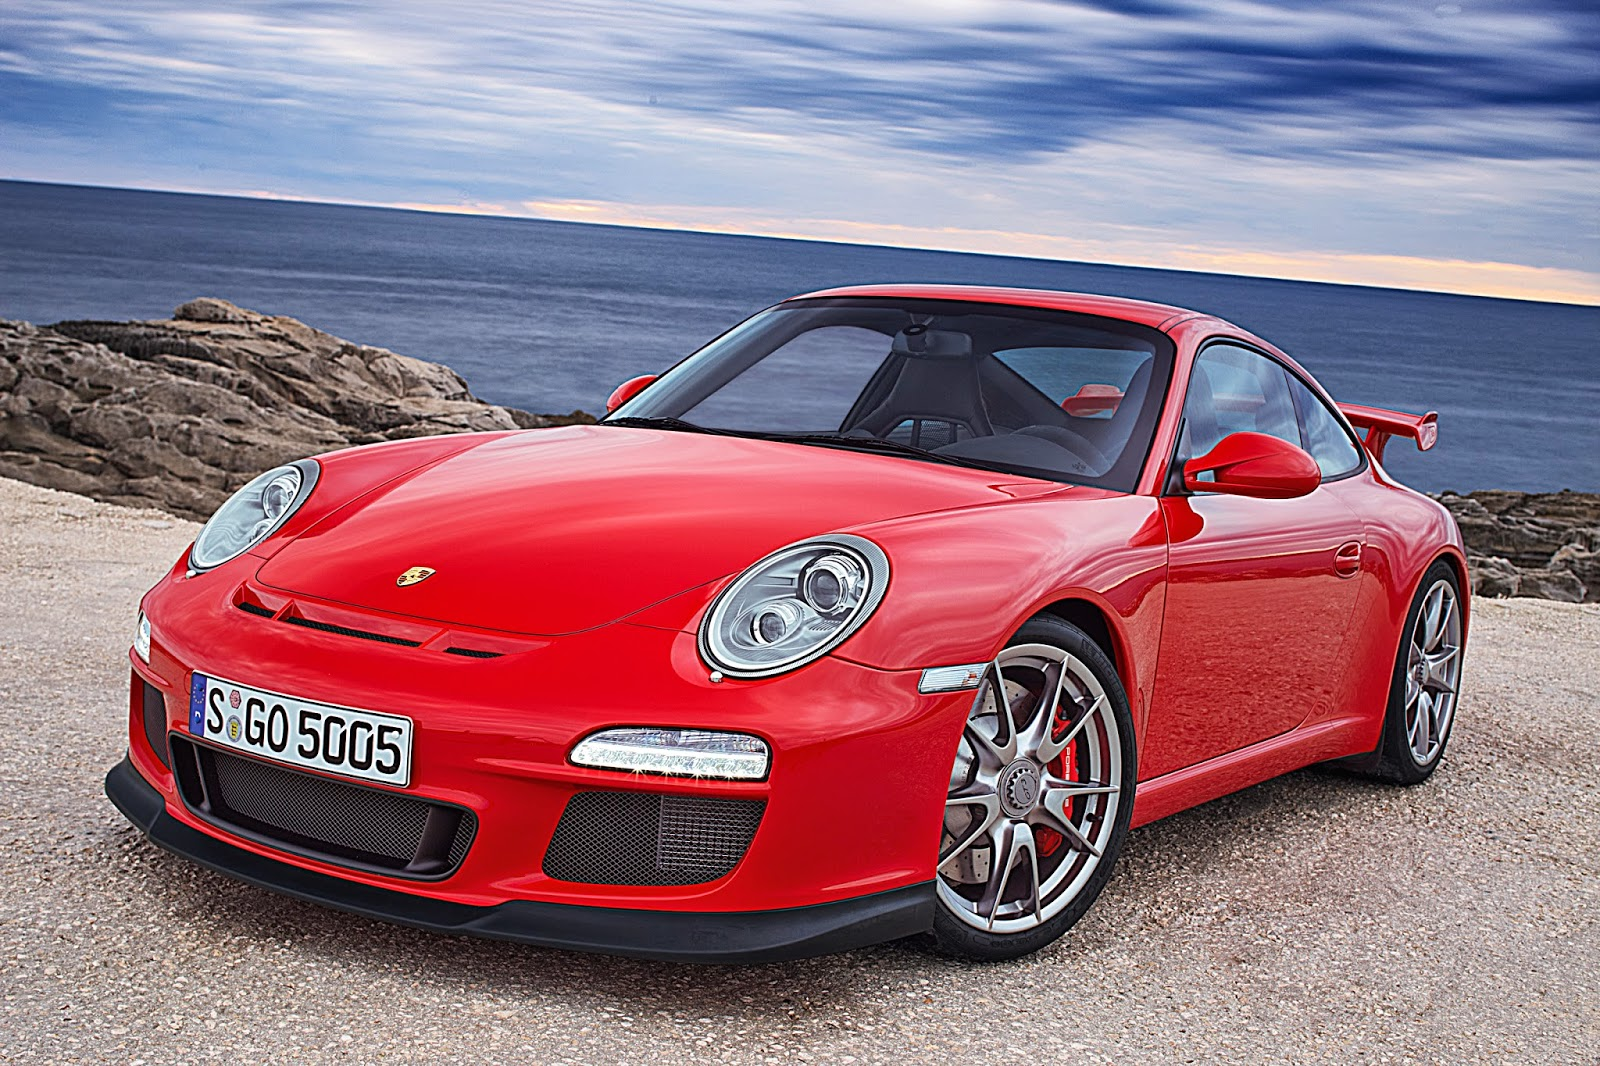 new porsche cayman gt4 vs used 39 997 39 911 gt3 w poll carscoops. Black Bedroom Furniture Sets. Home Design Ideas